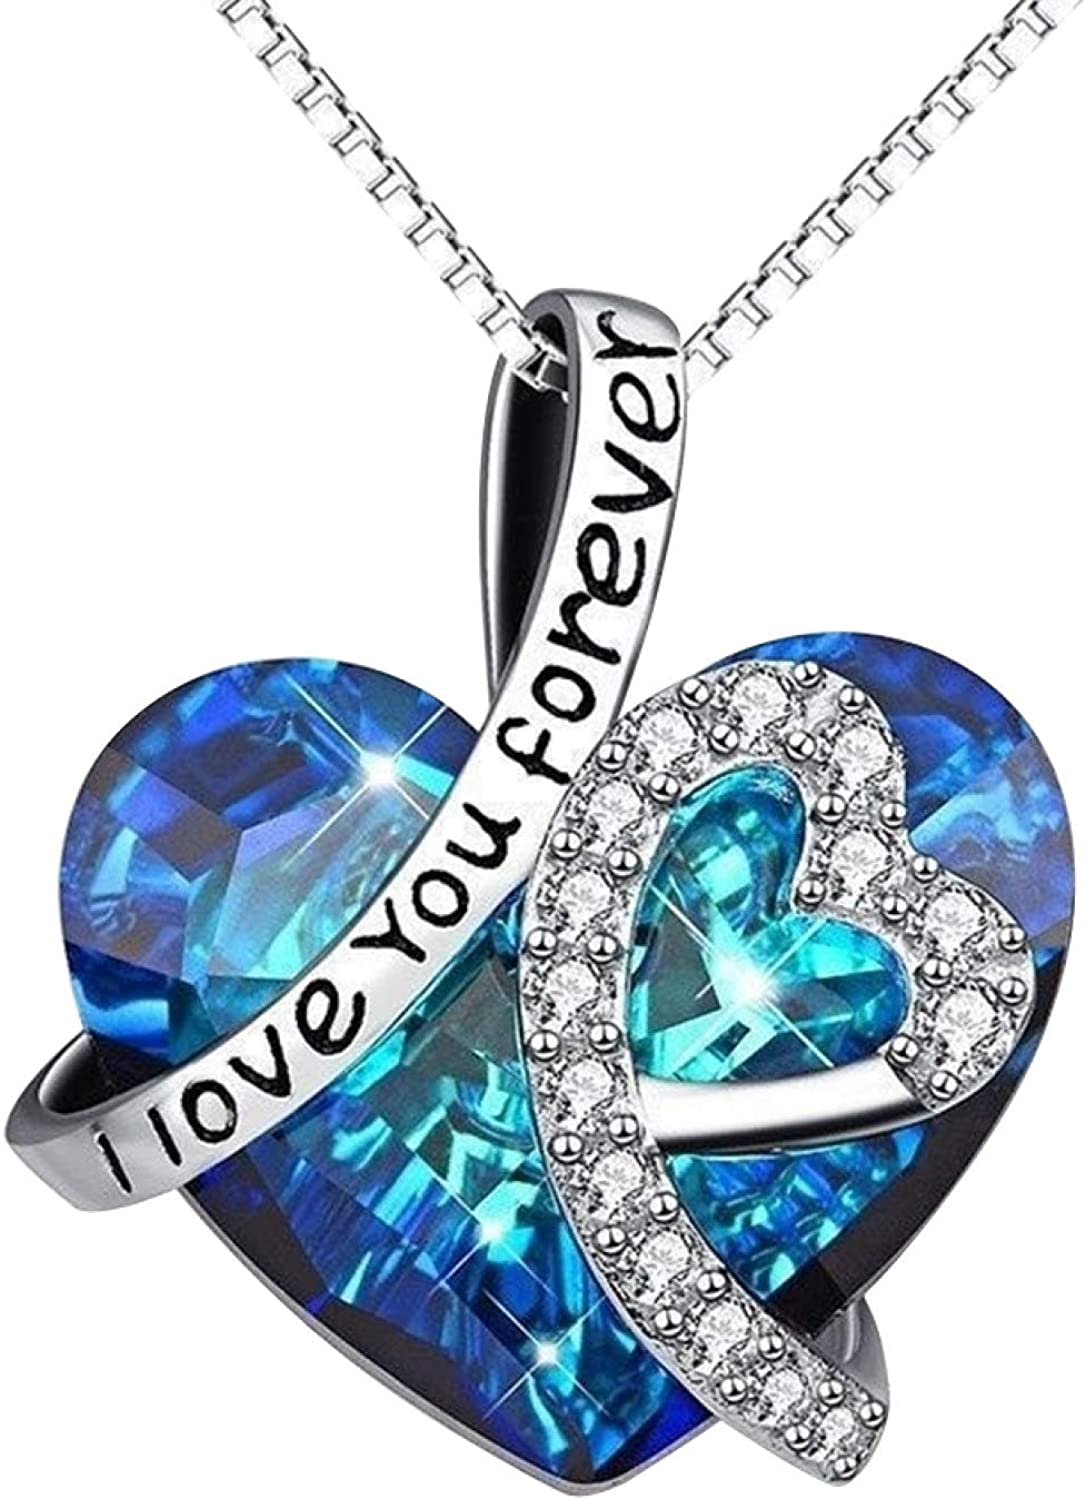 Lady Fashion Love Heart Pendant 1 year warranty It is very popular Clavicle Necklace Rhinestone Cha